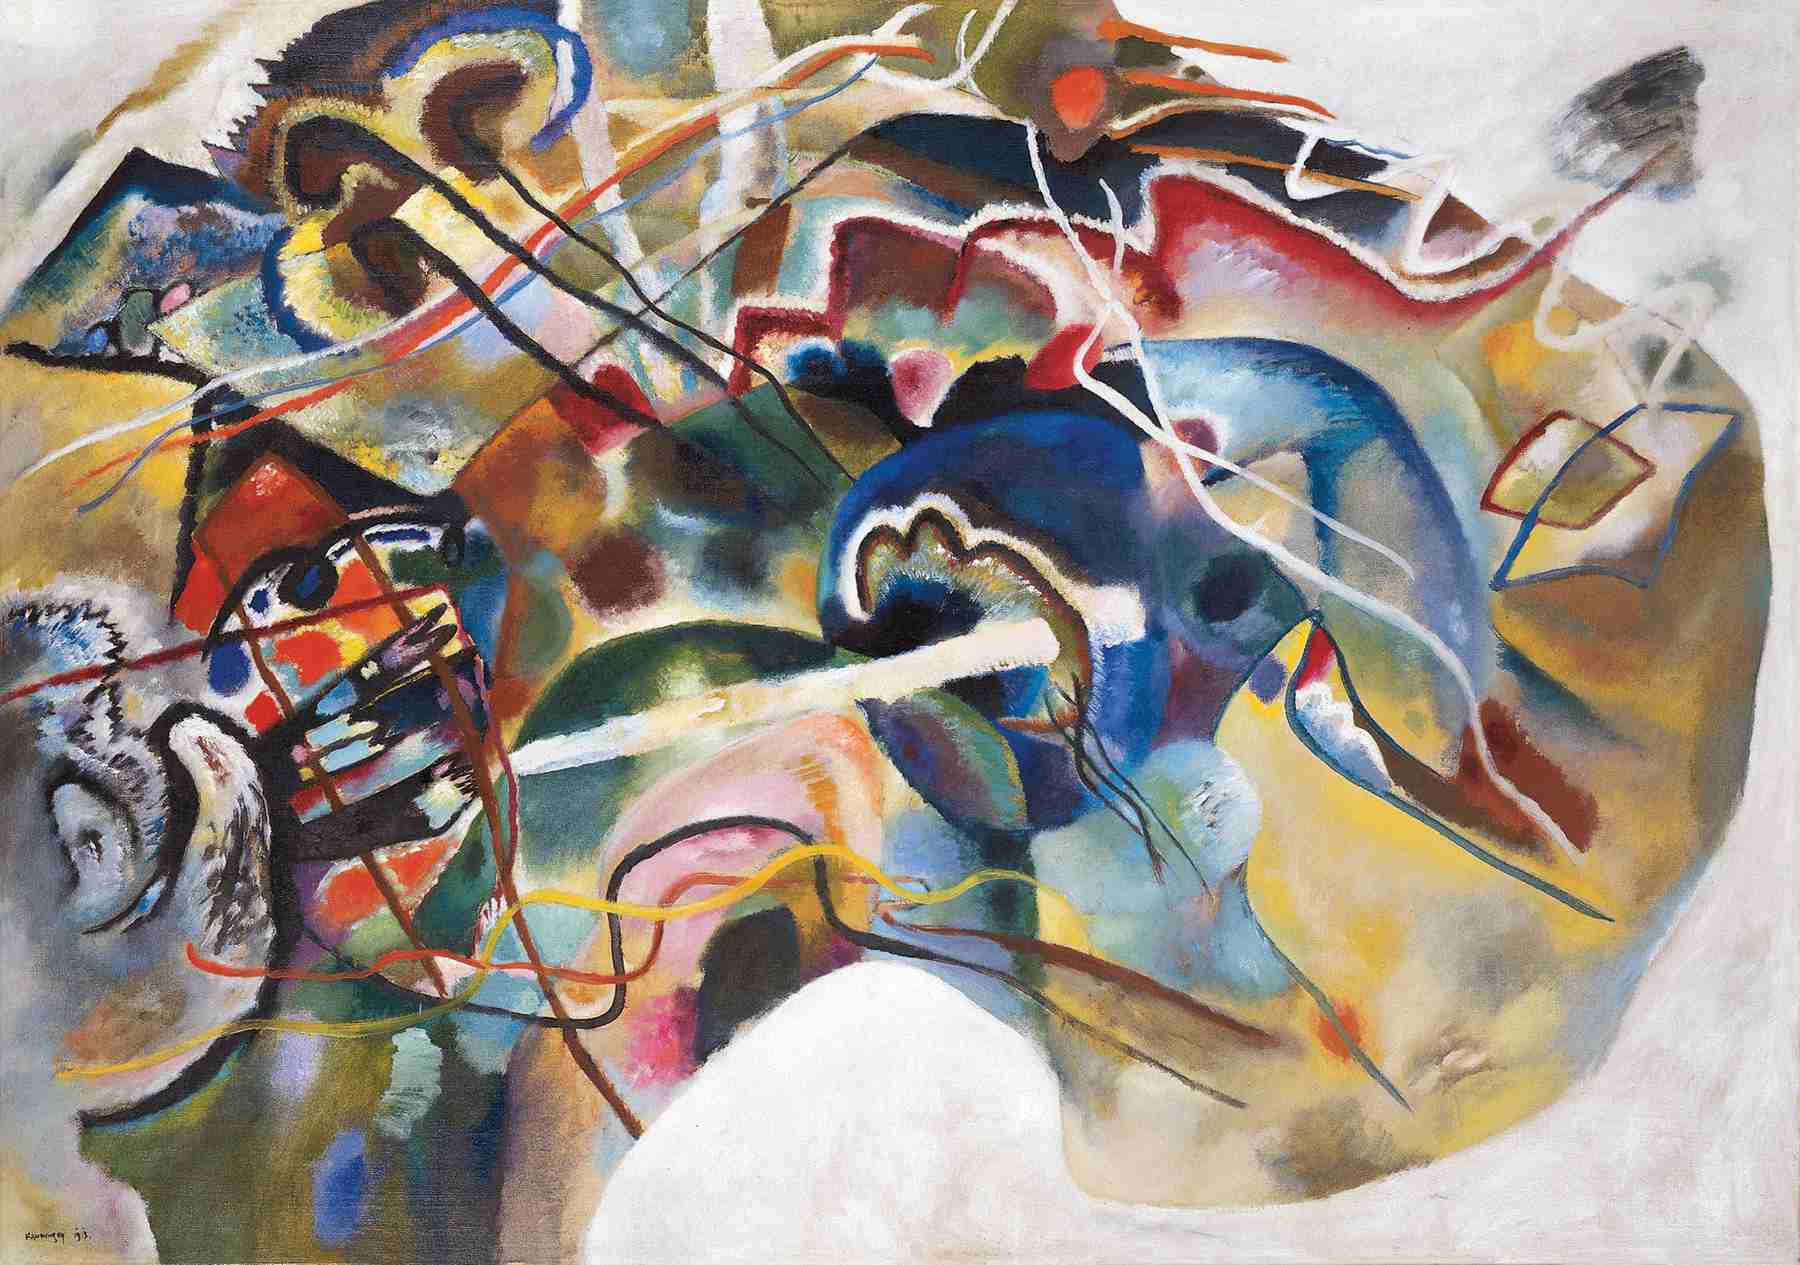 Wassily Kandinsky (Russian, 1866-1944) Wassily Kandinsky (Russian, 1866-1944). Painting with White Border (Moscow) (Bild mit weißem Rand [Moskau]), May 1913. Oil on canvas. 55 1/4 x 78 7/8 in. (140.3 x 200.3 cm). Solomon R. Guggenheim Founding Collection, By gift 37.245.